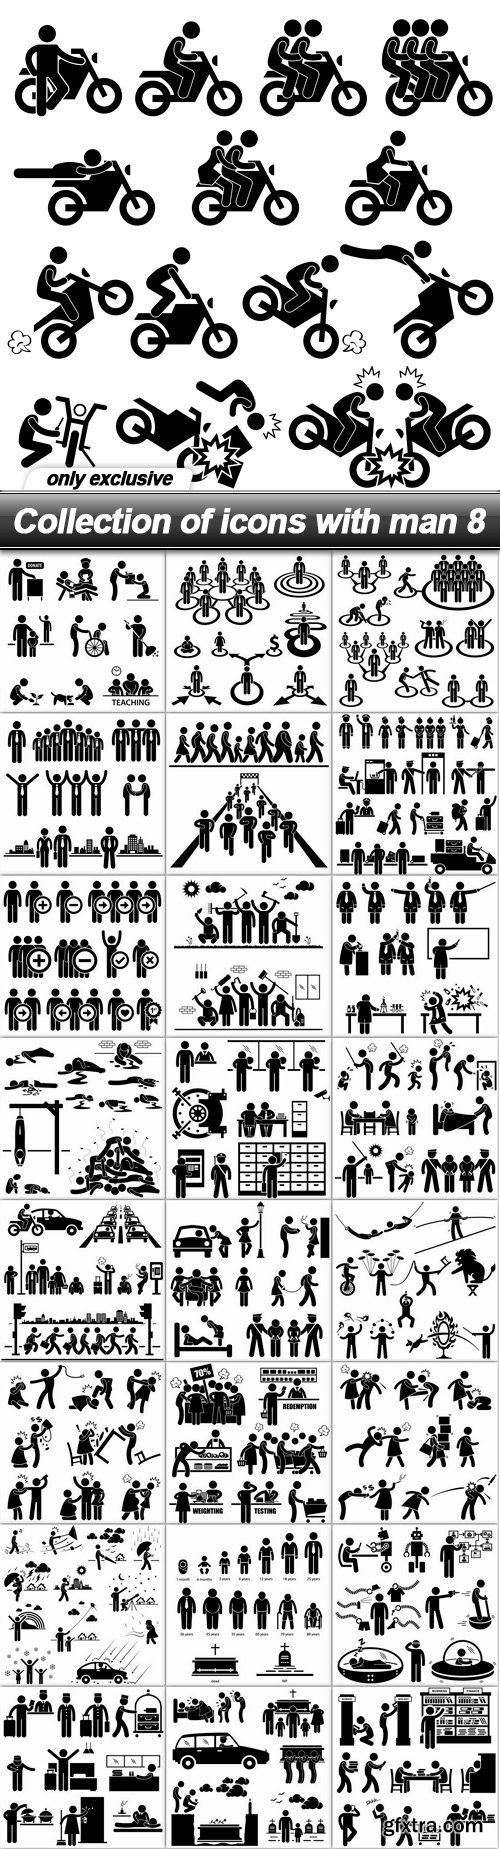 Collection of icons with man 8 - 25 EPS